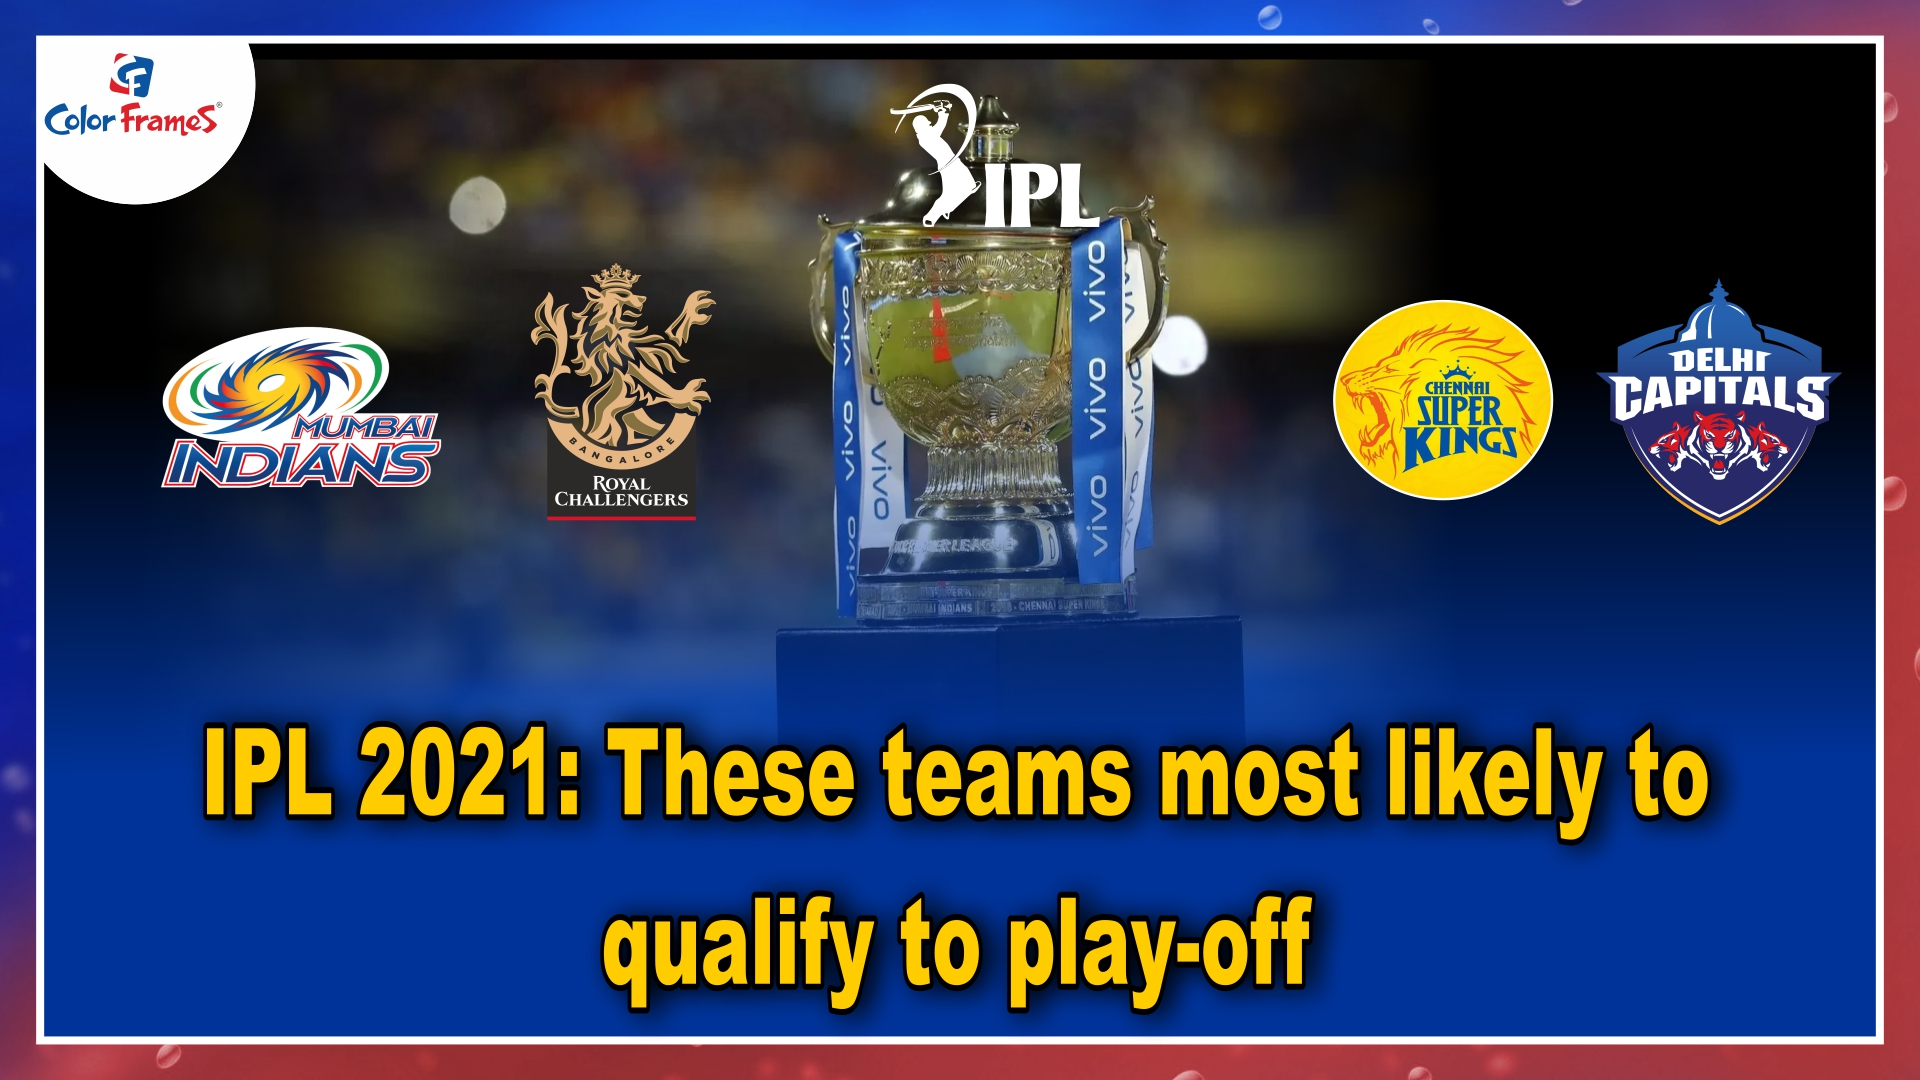 IPL 2021: These teams most likely to qualify to play-off